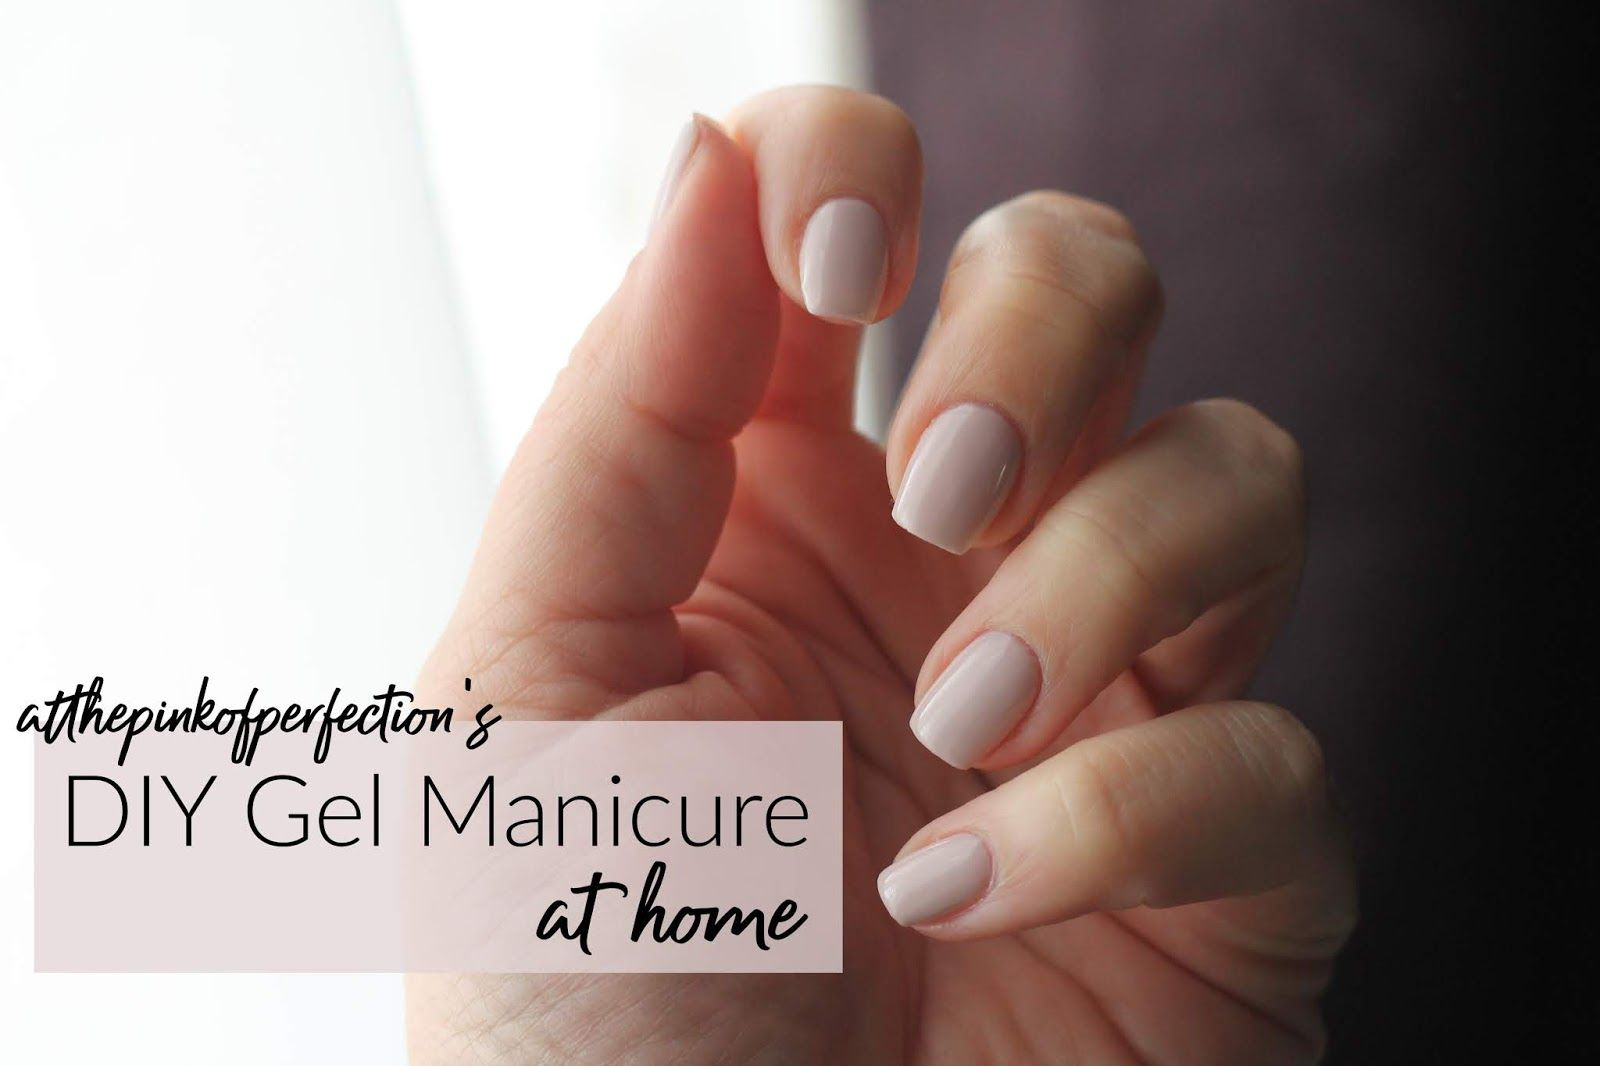 Easy Instructions For A Stunning At Home Gel Manicure Gel Manicure At Home Diy Gel Manicure Gel Manicure